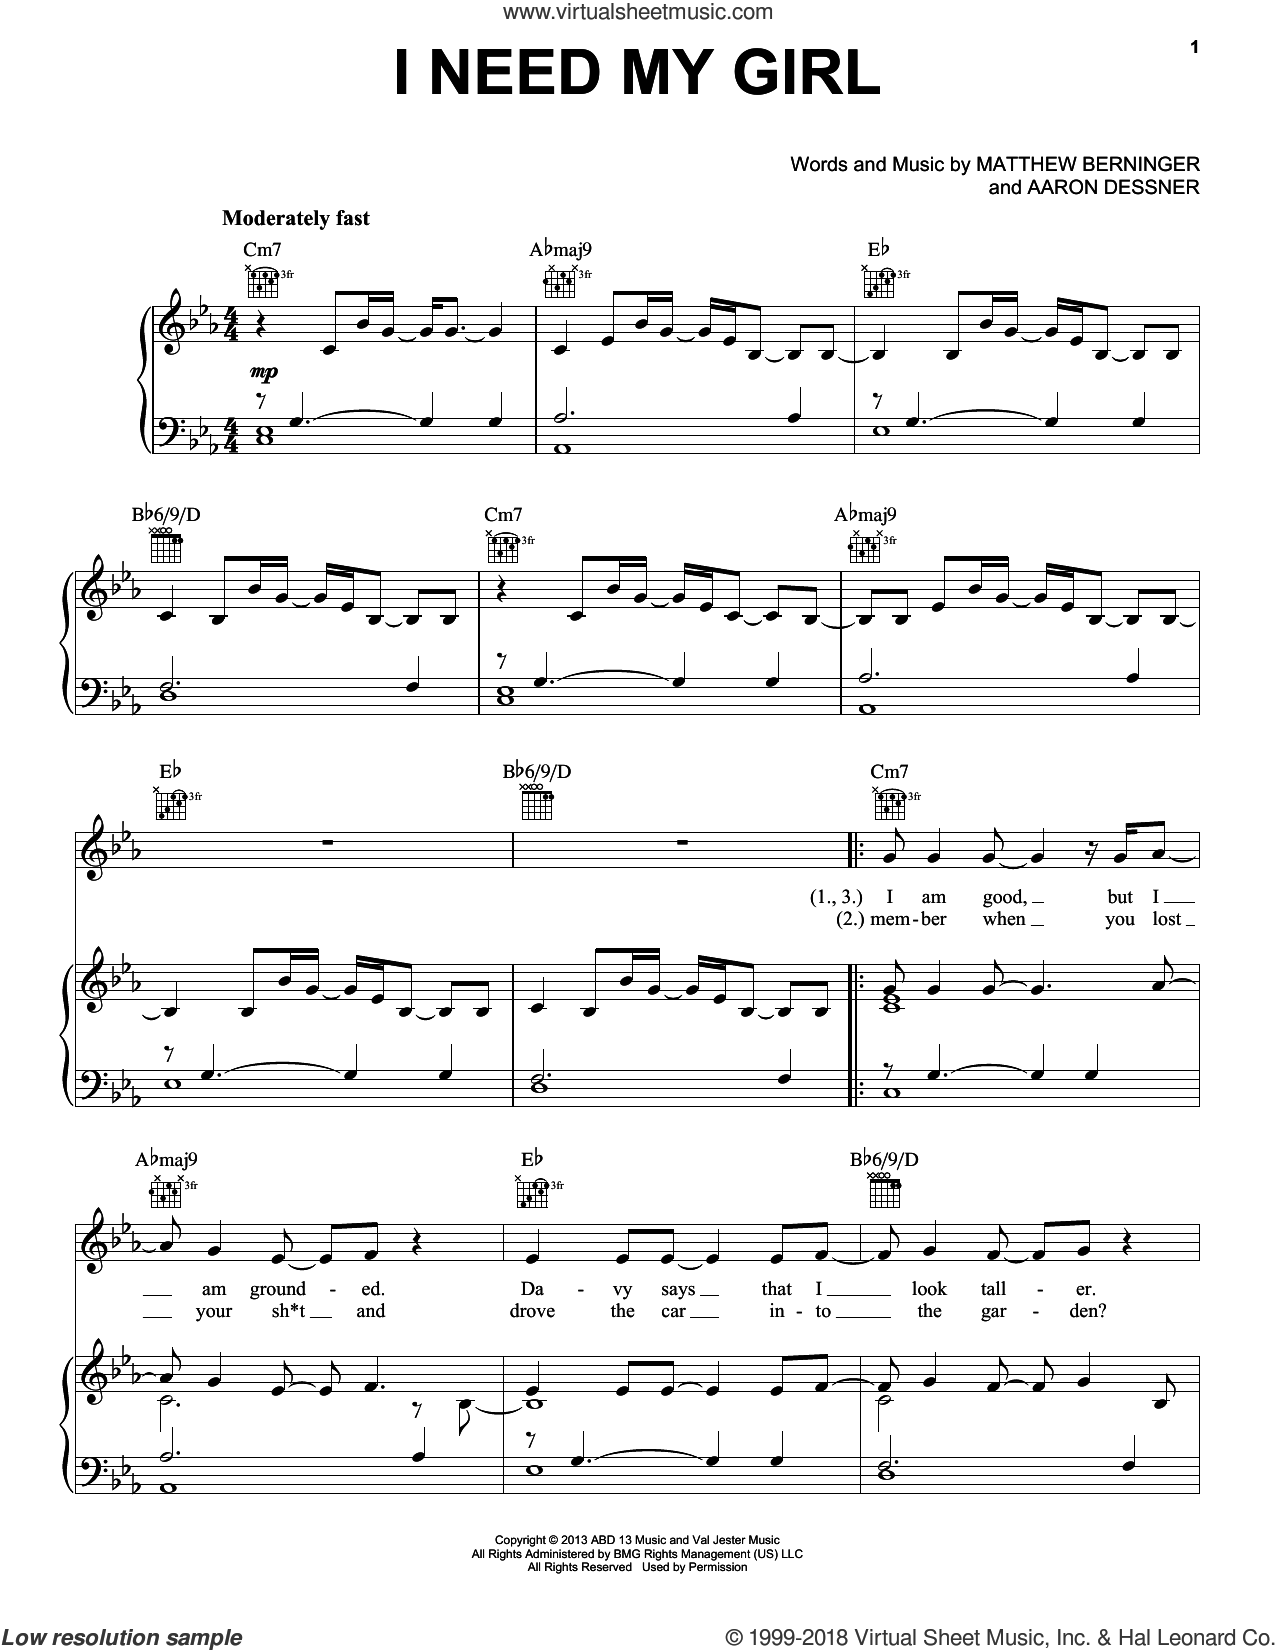 I Need My Girl sheet music for voice, piano or guitar by The National. Score Image Preview.